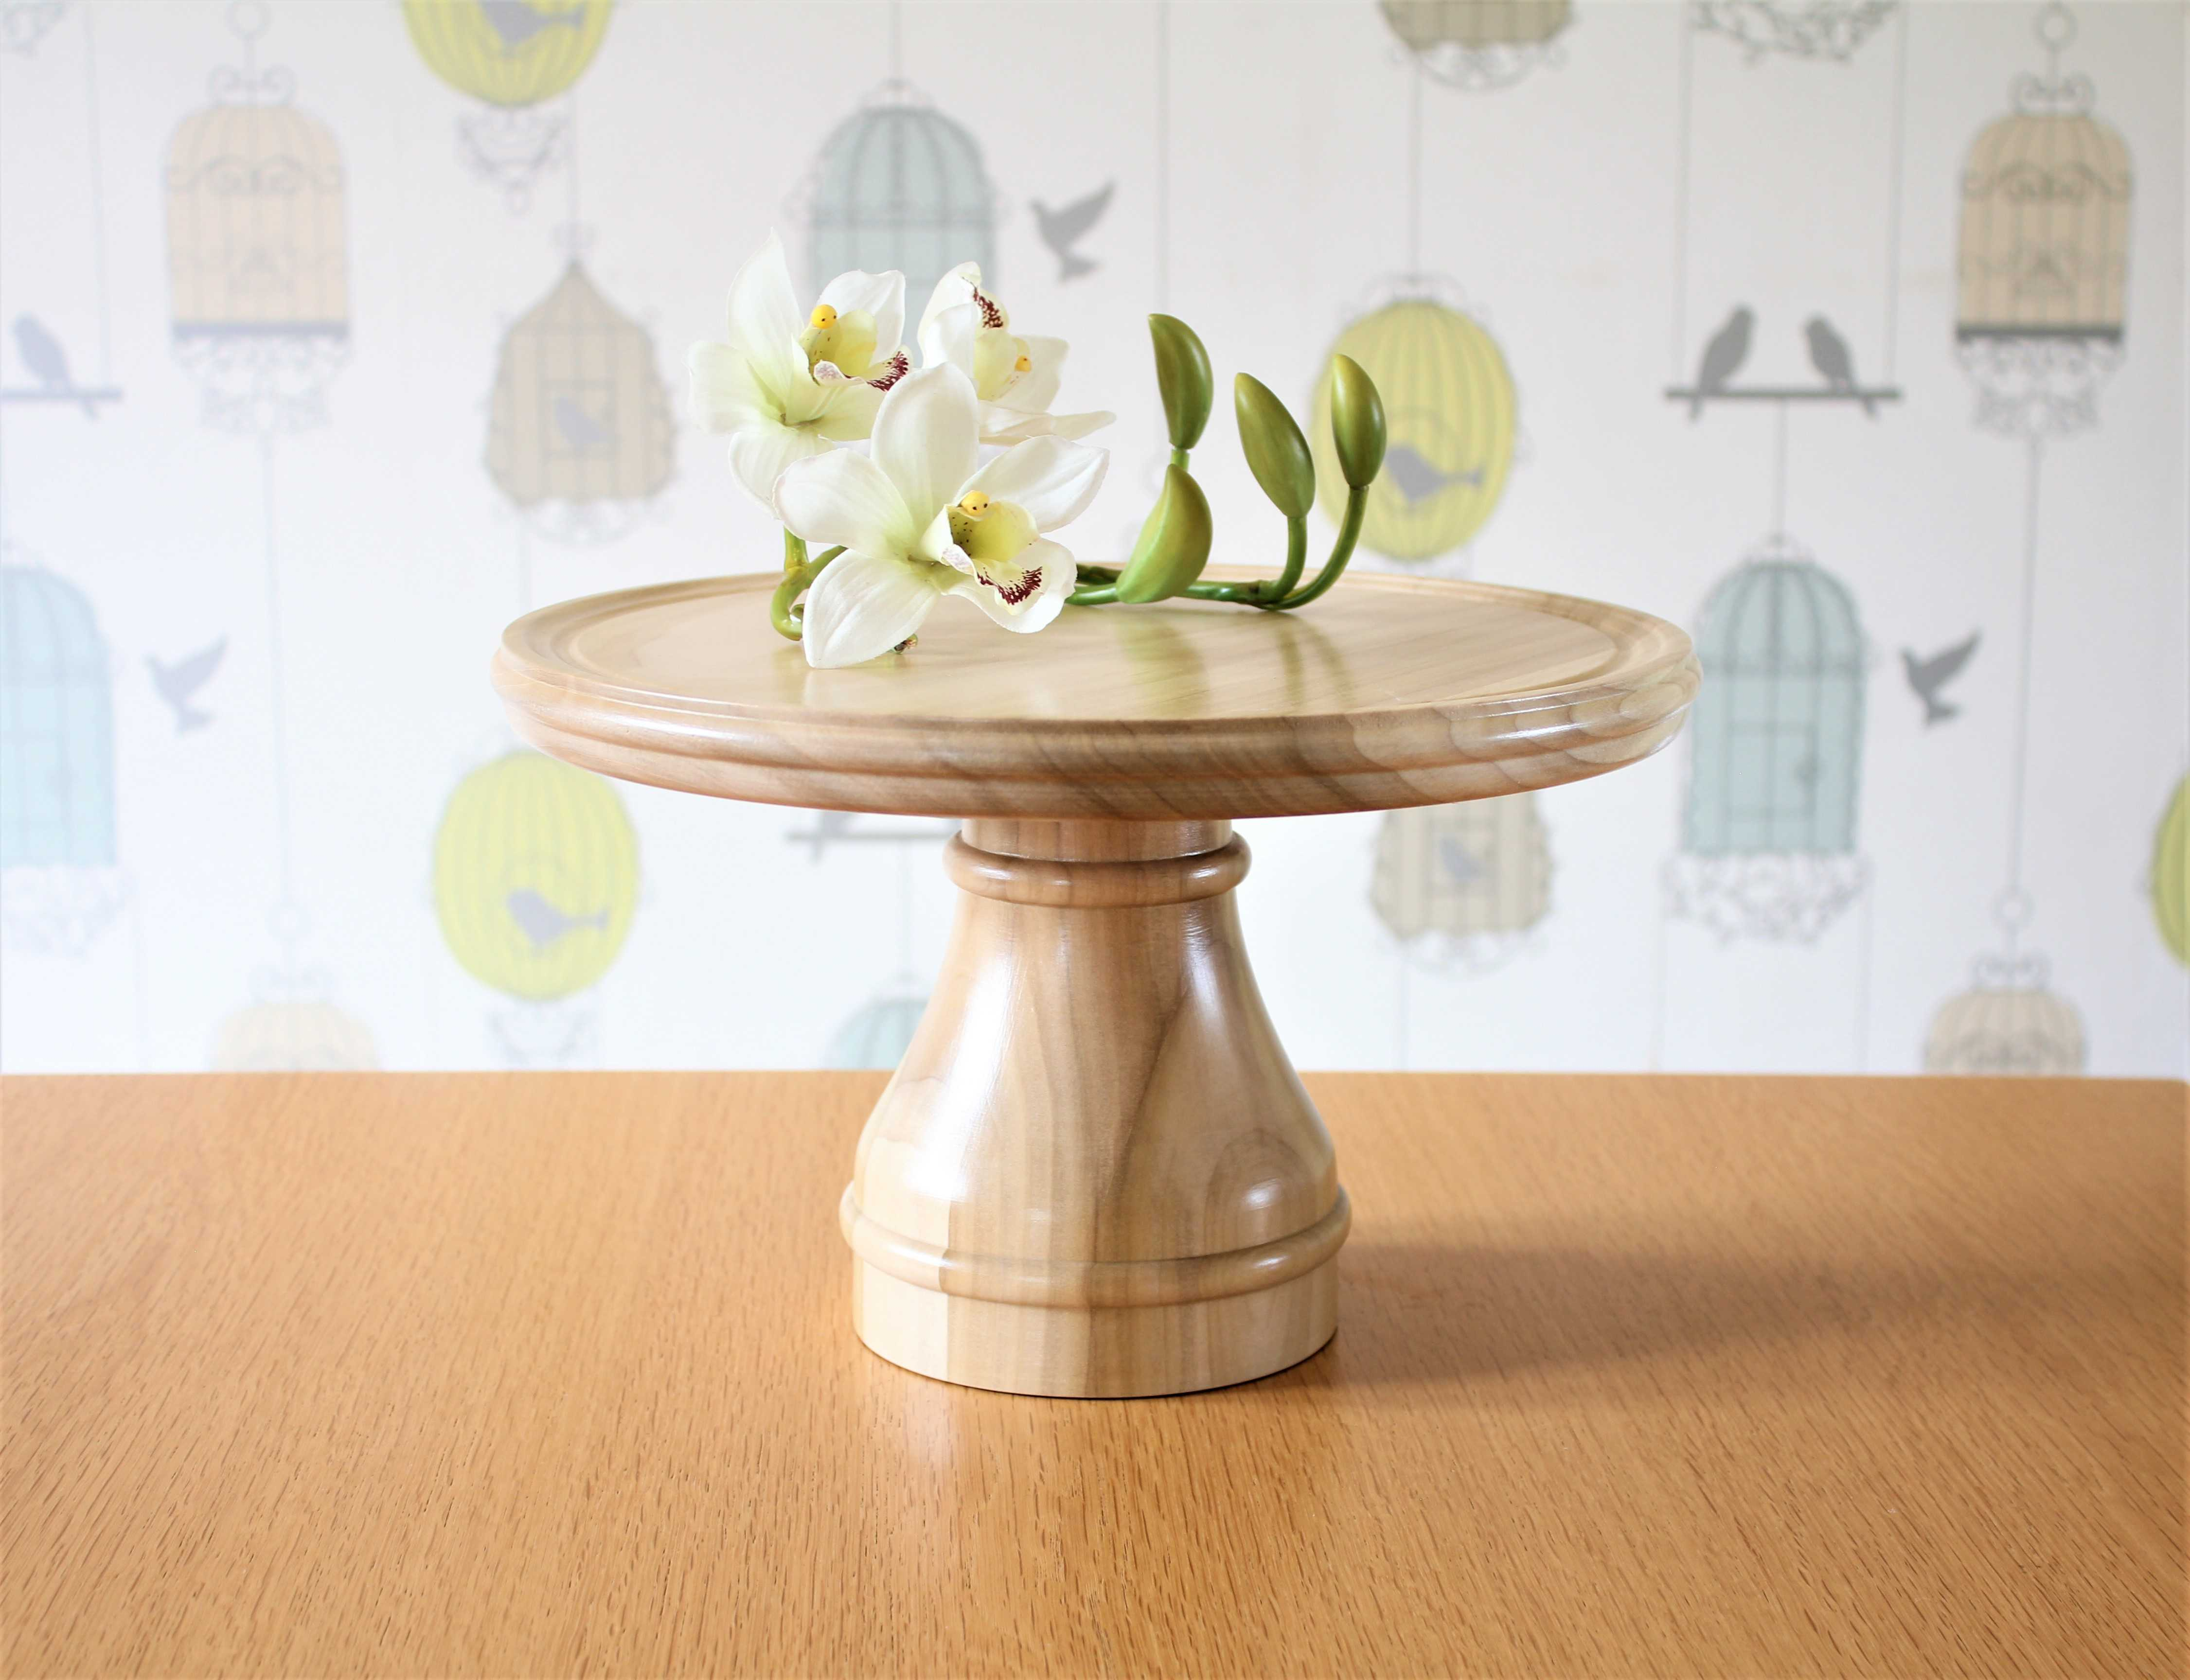 Turned from Tulipwood this cake stand is 31cm wide, comfortably sitting a 10 inch round cake board.